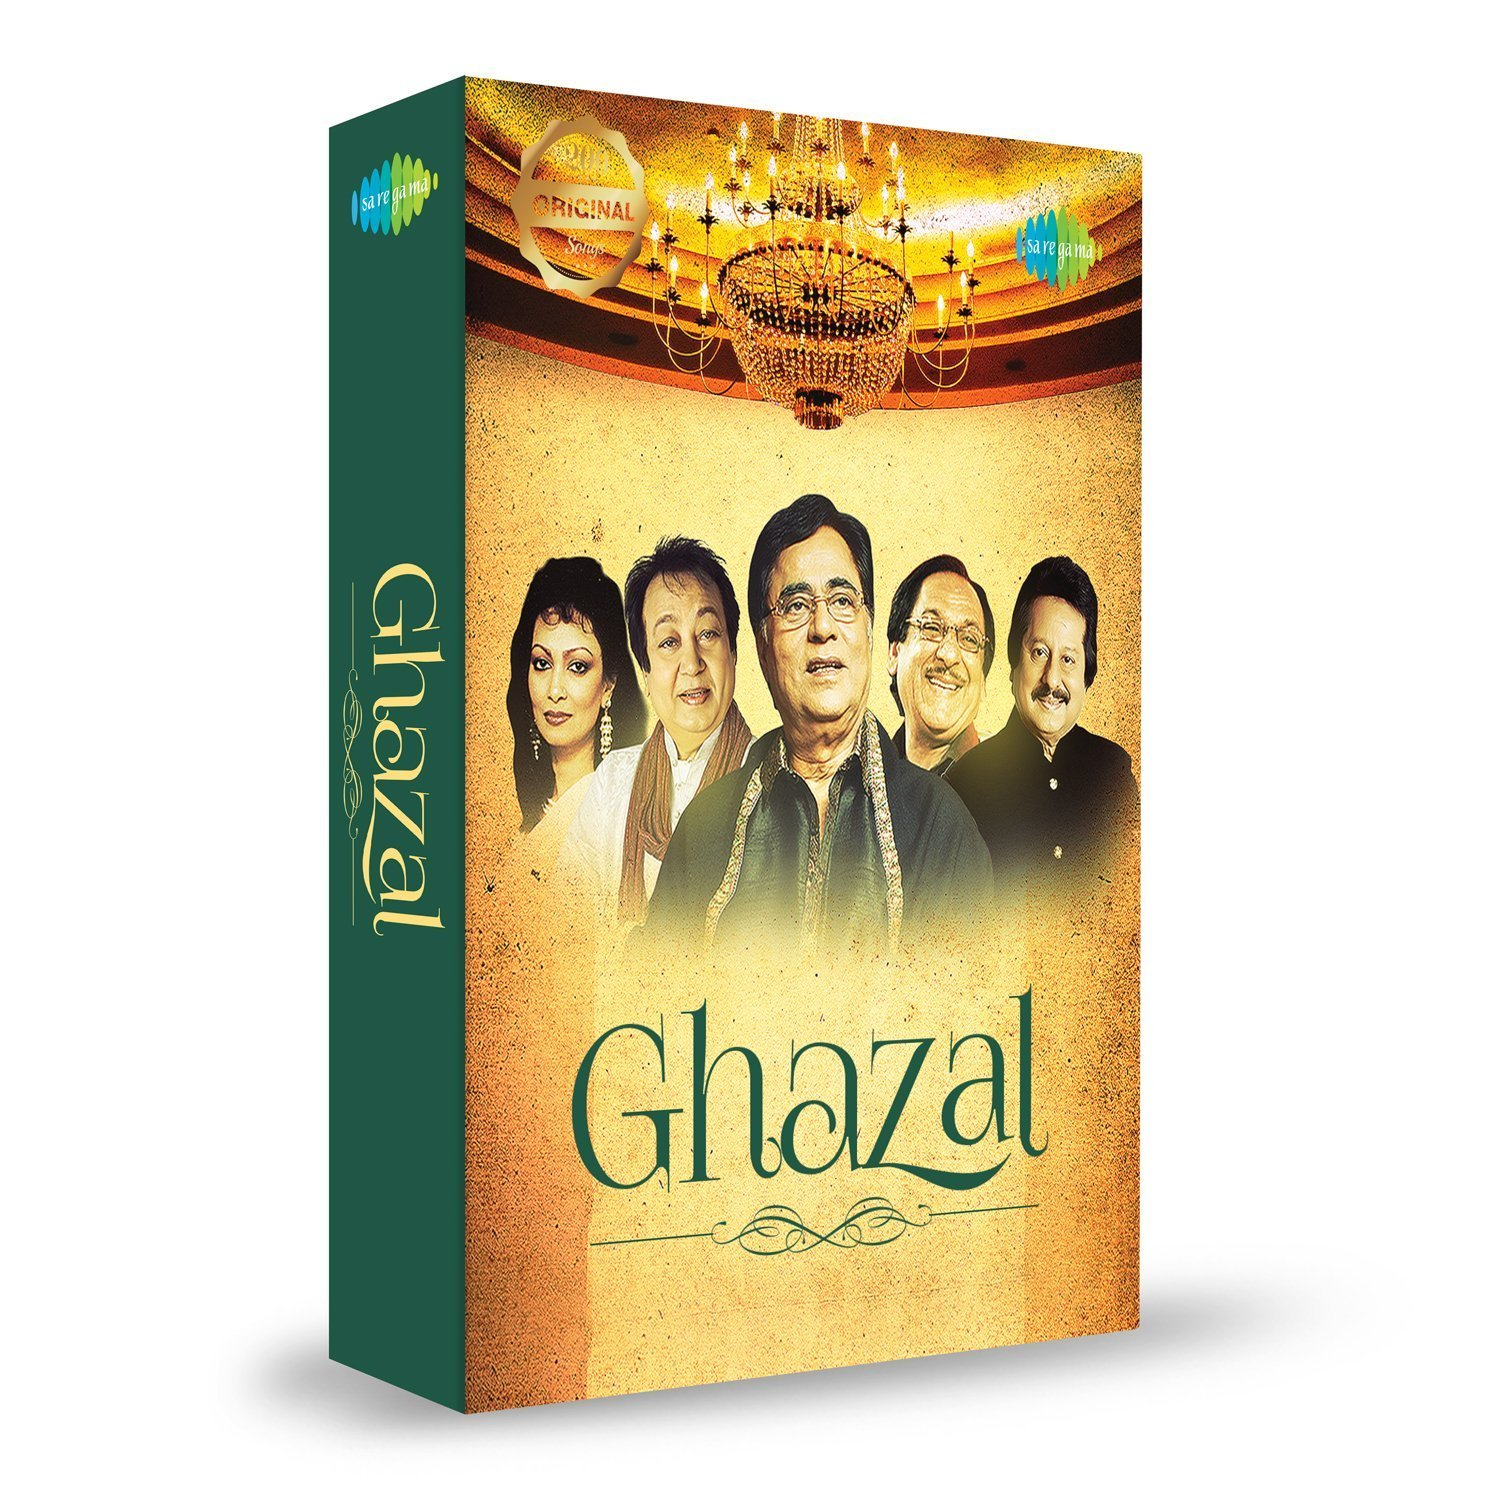 Buy Music Card Ghazal 320 Kbps Mp3 Audio 4 Gb Online At Low